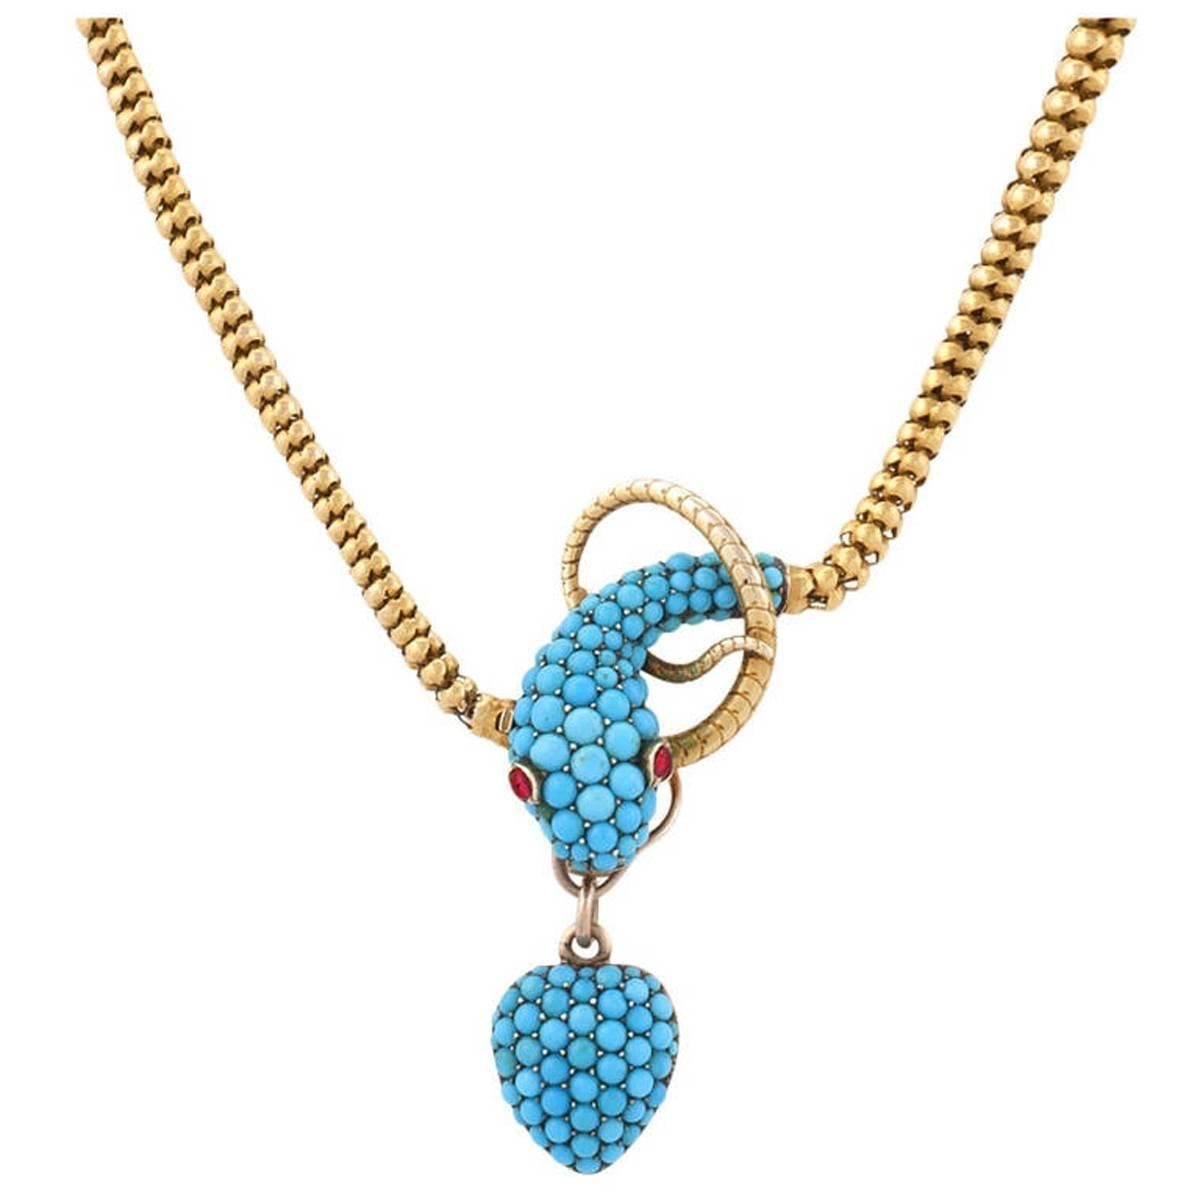 Tessier london antique turquoise ruby gold snake necklace http